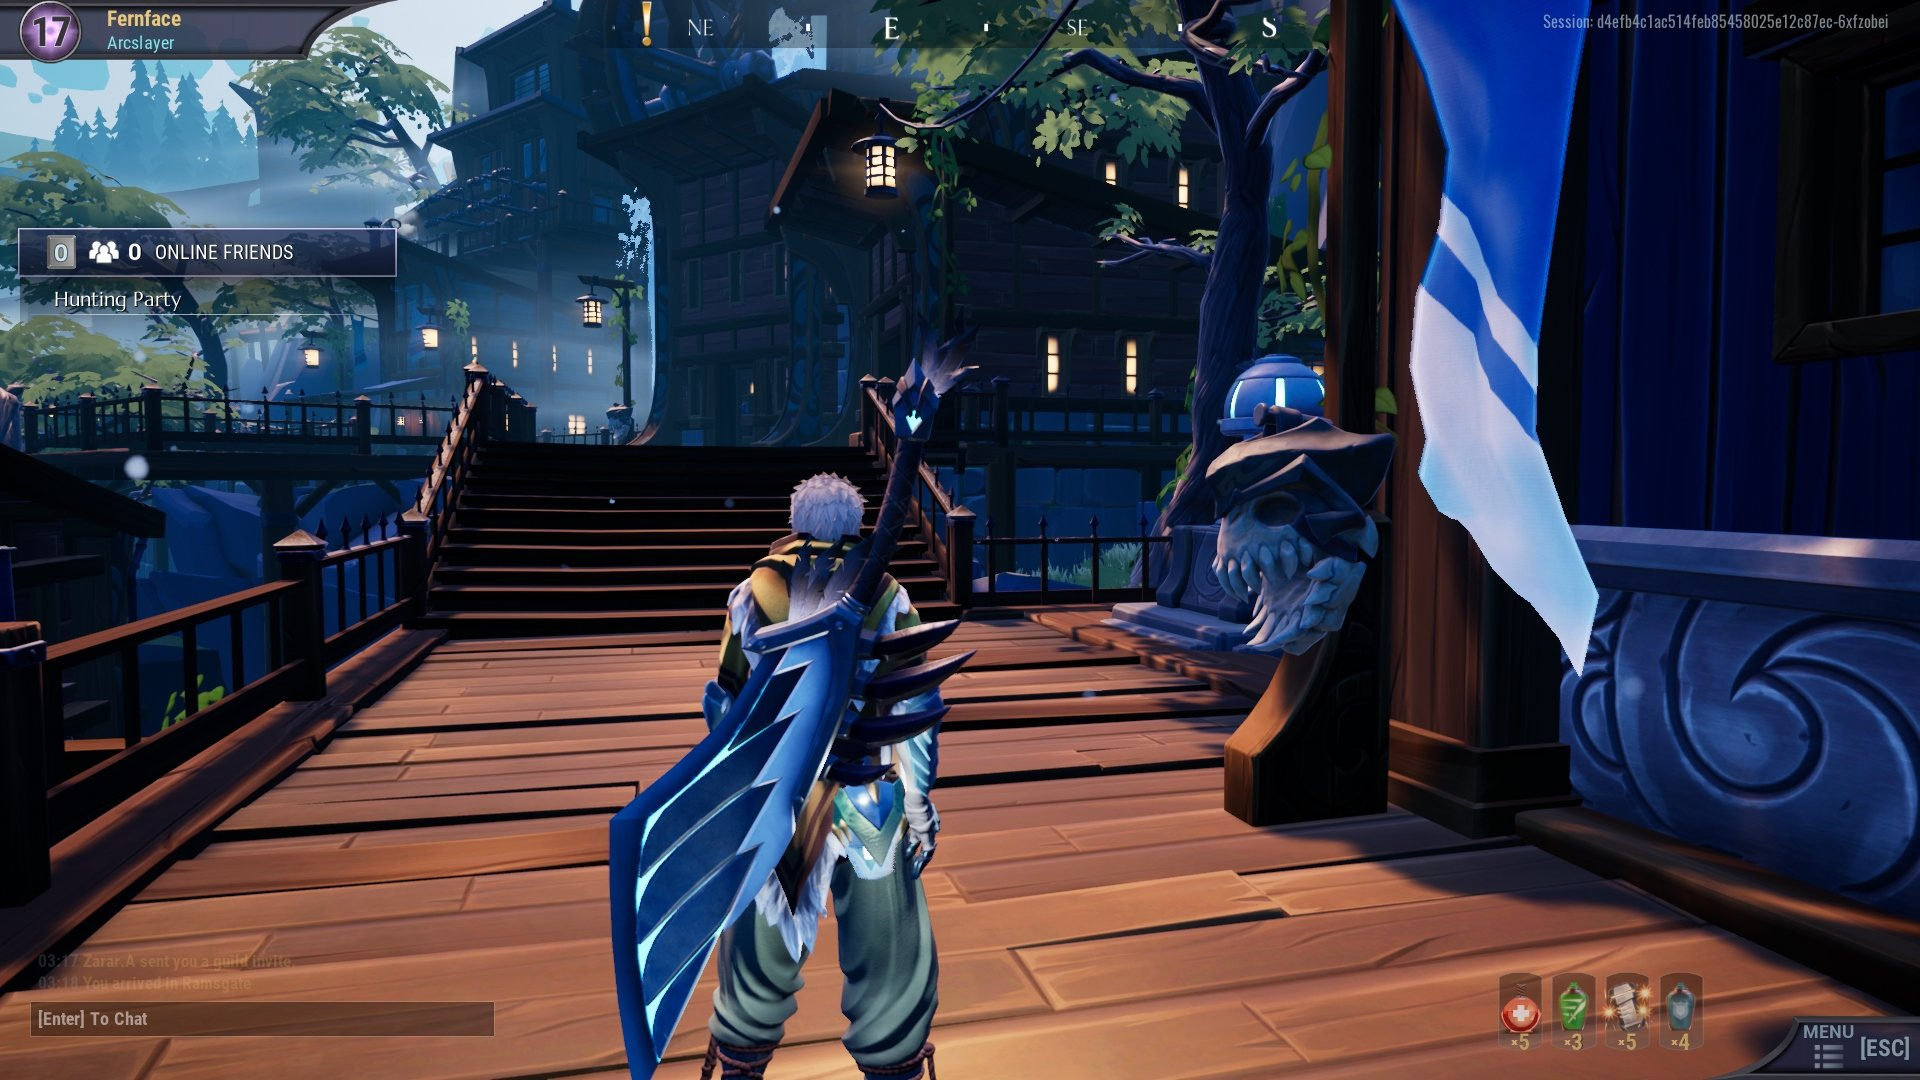 Dread Skull 15 - All daily dread skull locations in Dauntless